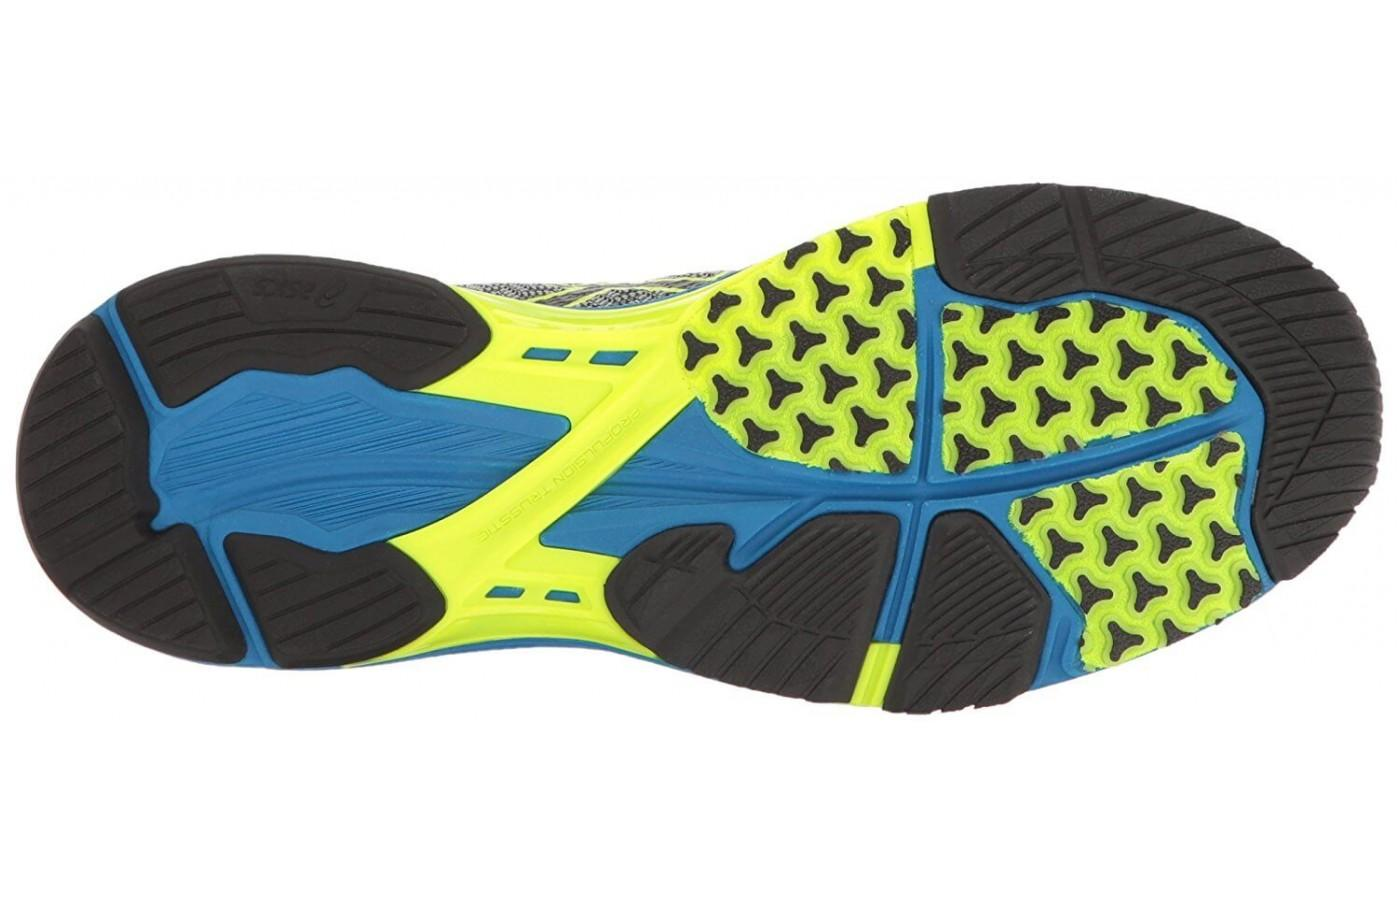 The Asics Gel DS Trainer 22 has great traction